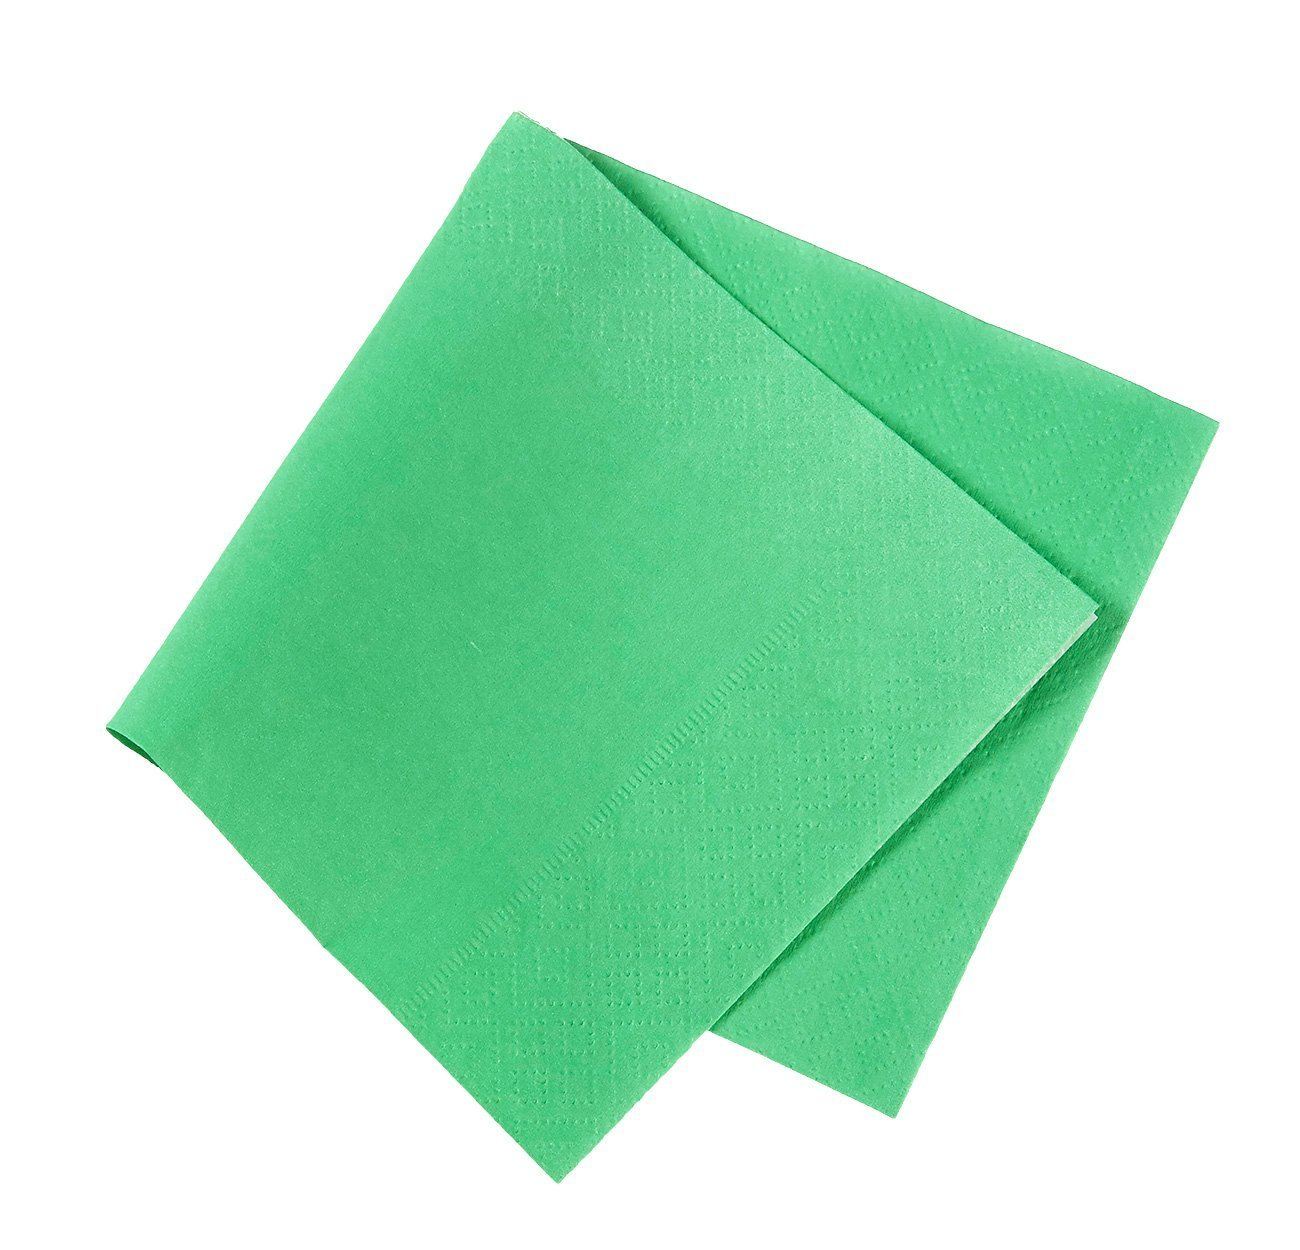 Cocktail Napkins - 200-Pack Disposable Paper Napkins, 2-Ply, Kelly Green, 5 x 5 Inches Folded by Blue Panda (Image #7)